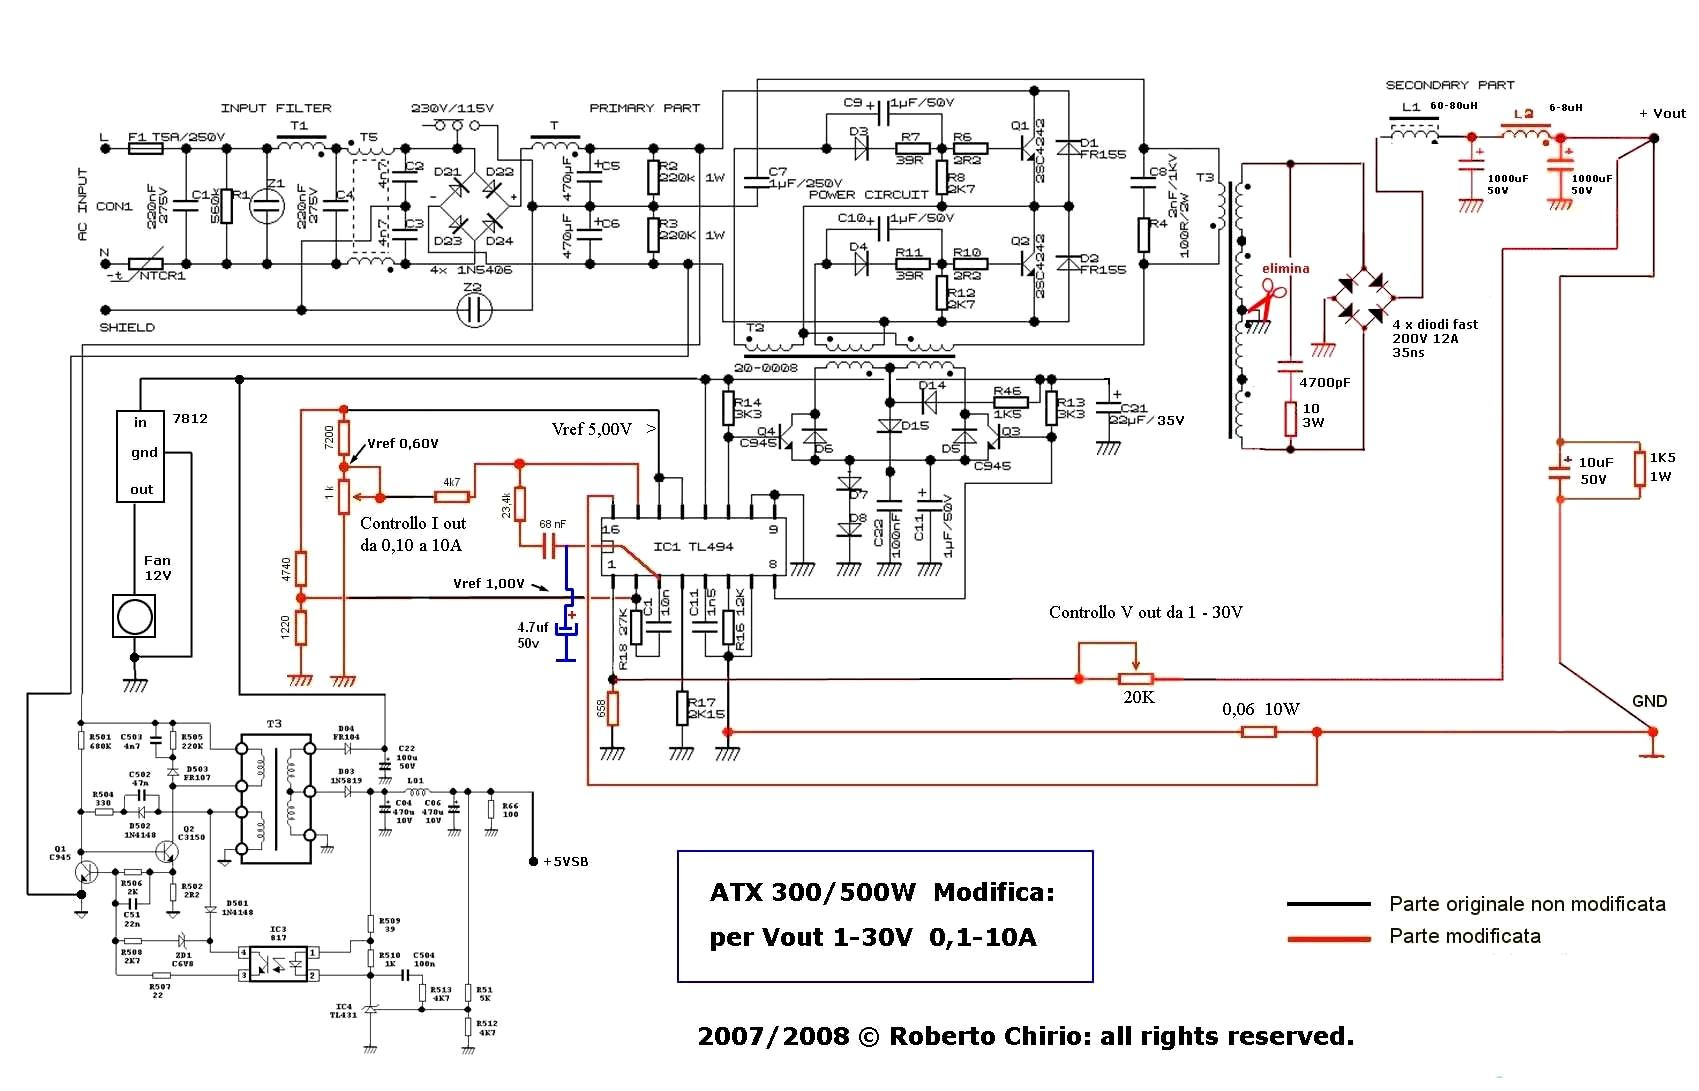 65ebaee70843afb05b130fc240781086 psu wiring diagram xbox 360 psu wiring diagram \u2022 wiring diagrams xbox 360 power supply wiring diagram at panicattacktreatment.co